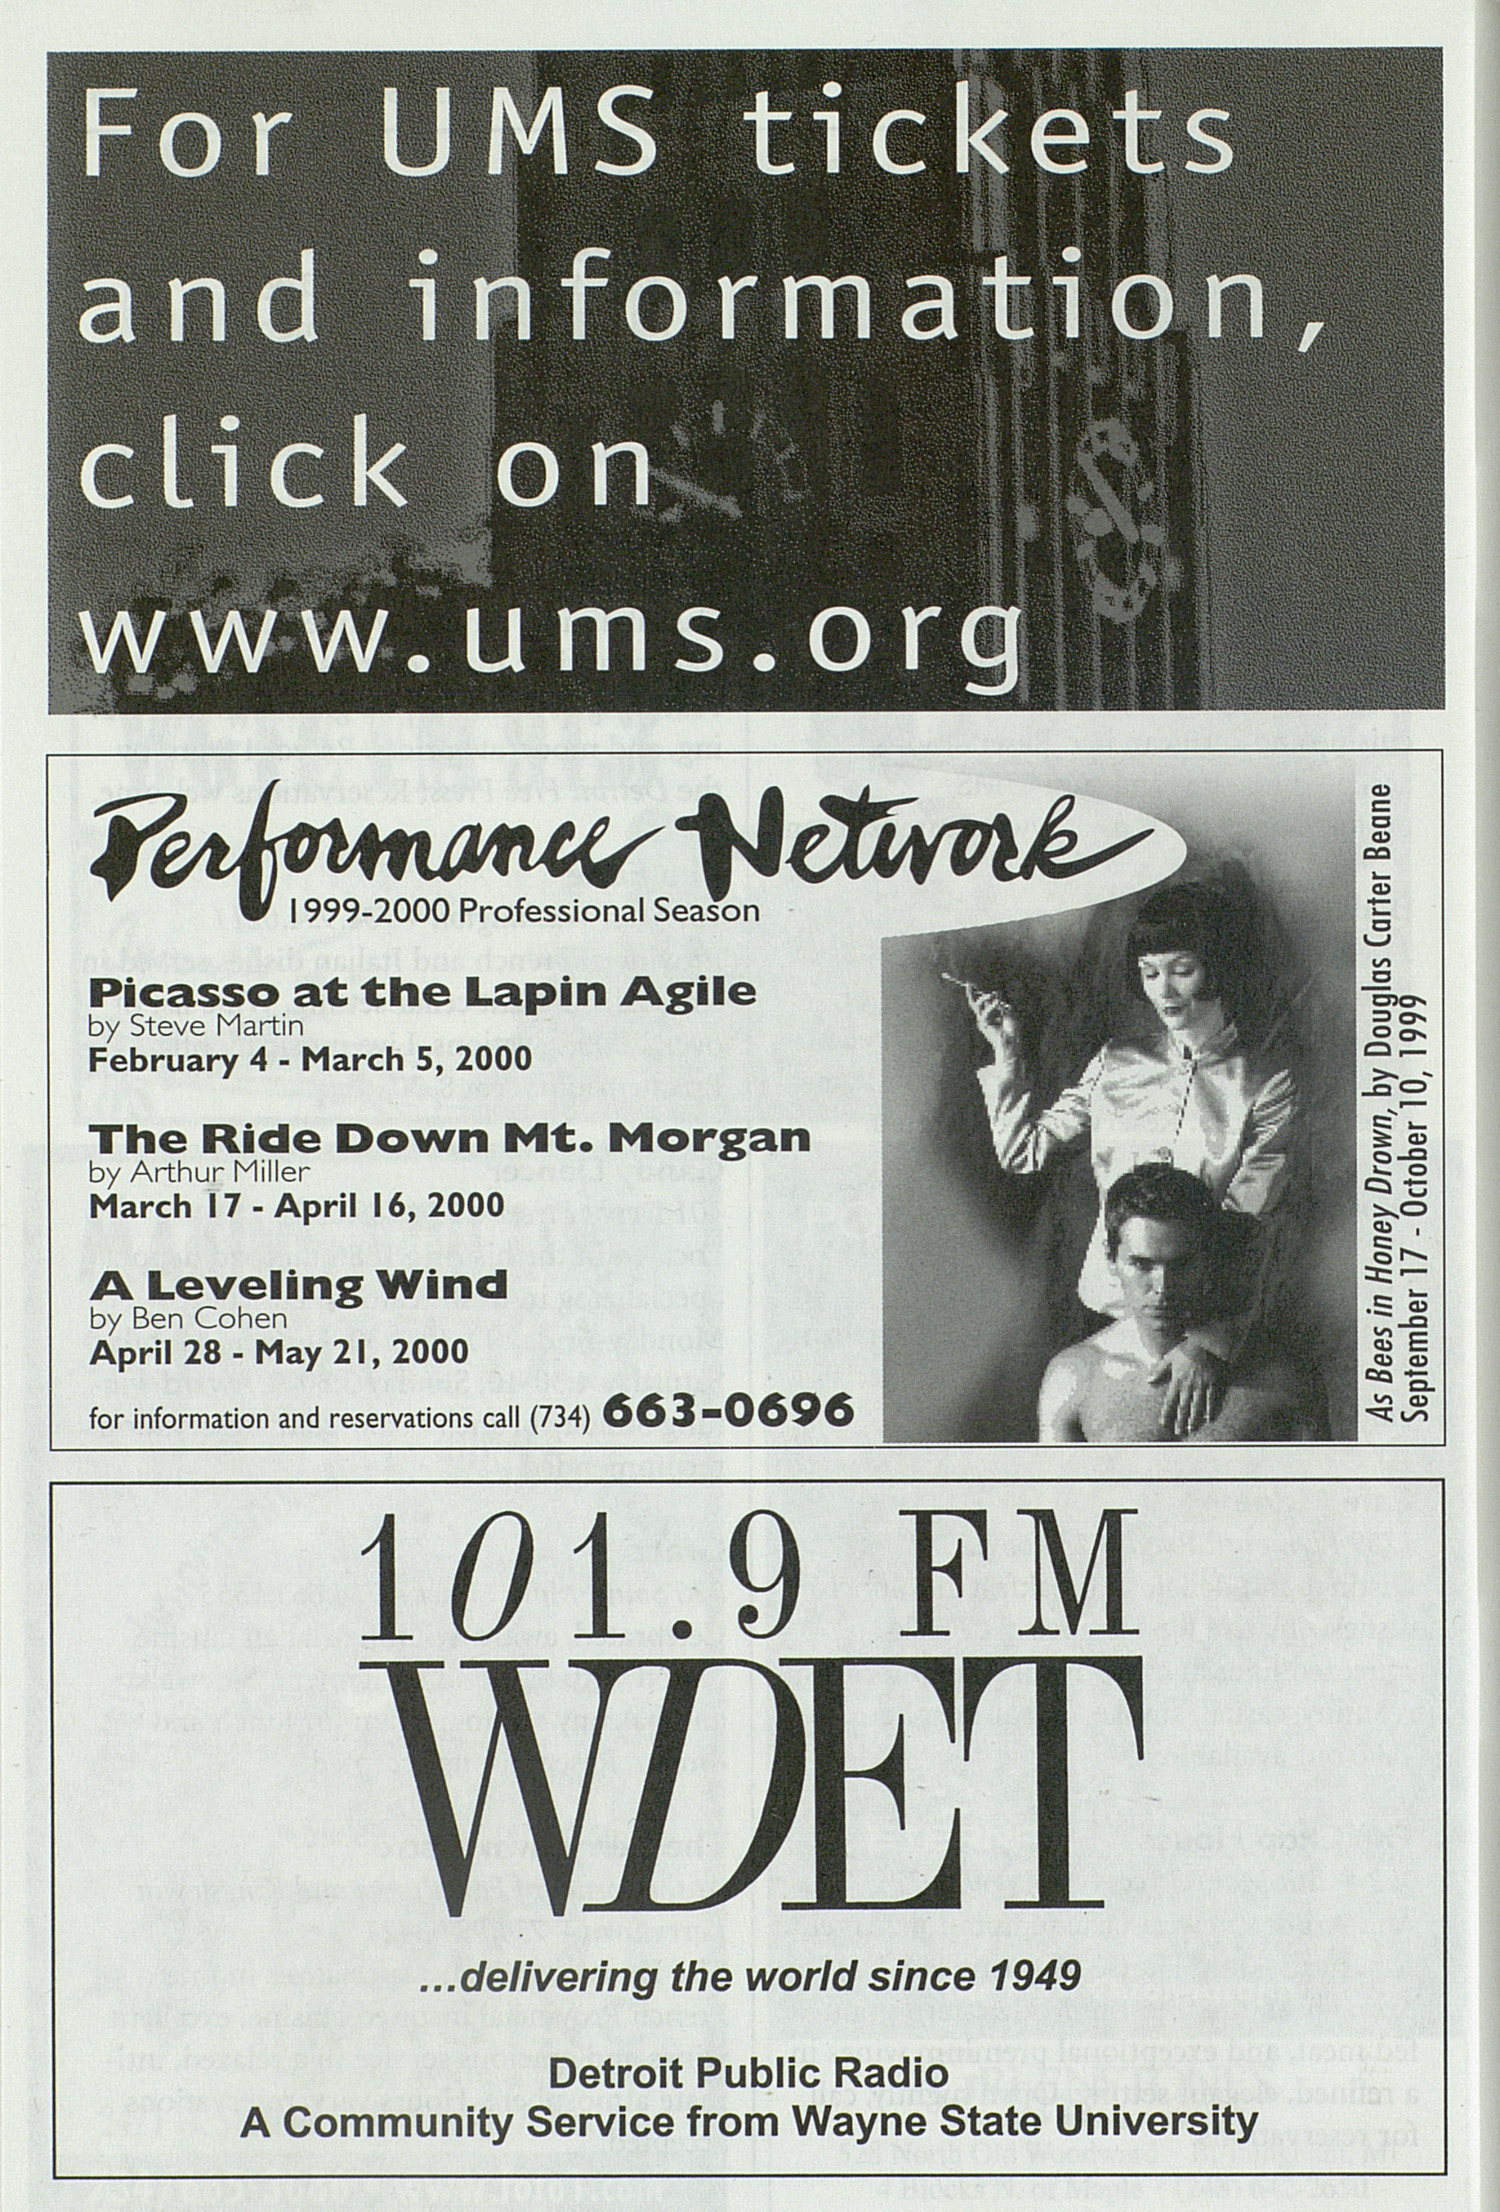 UMS Concert Program, Sunday Mar. 05 To 17: University Musical Society: 1999-2000 Winter - Sunday Mar. 05 To 17 --  image